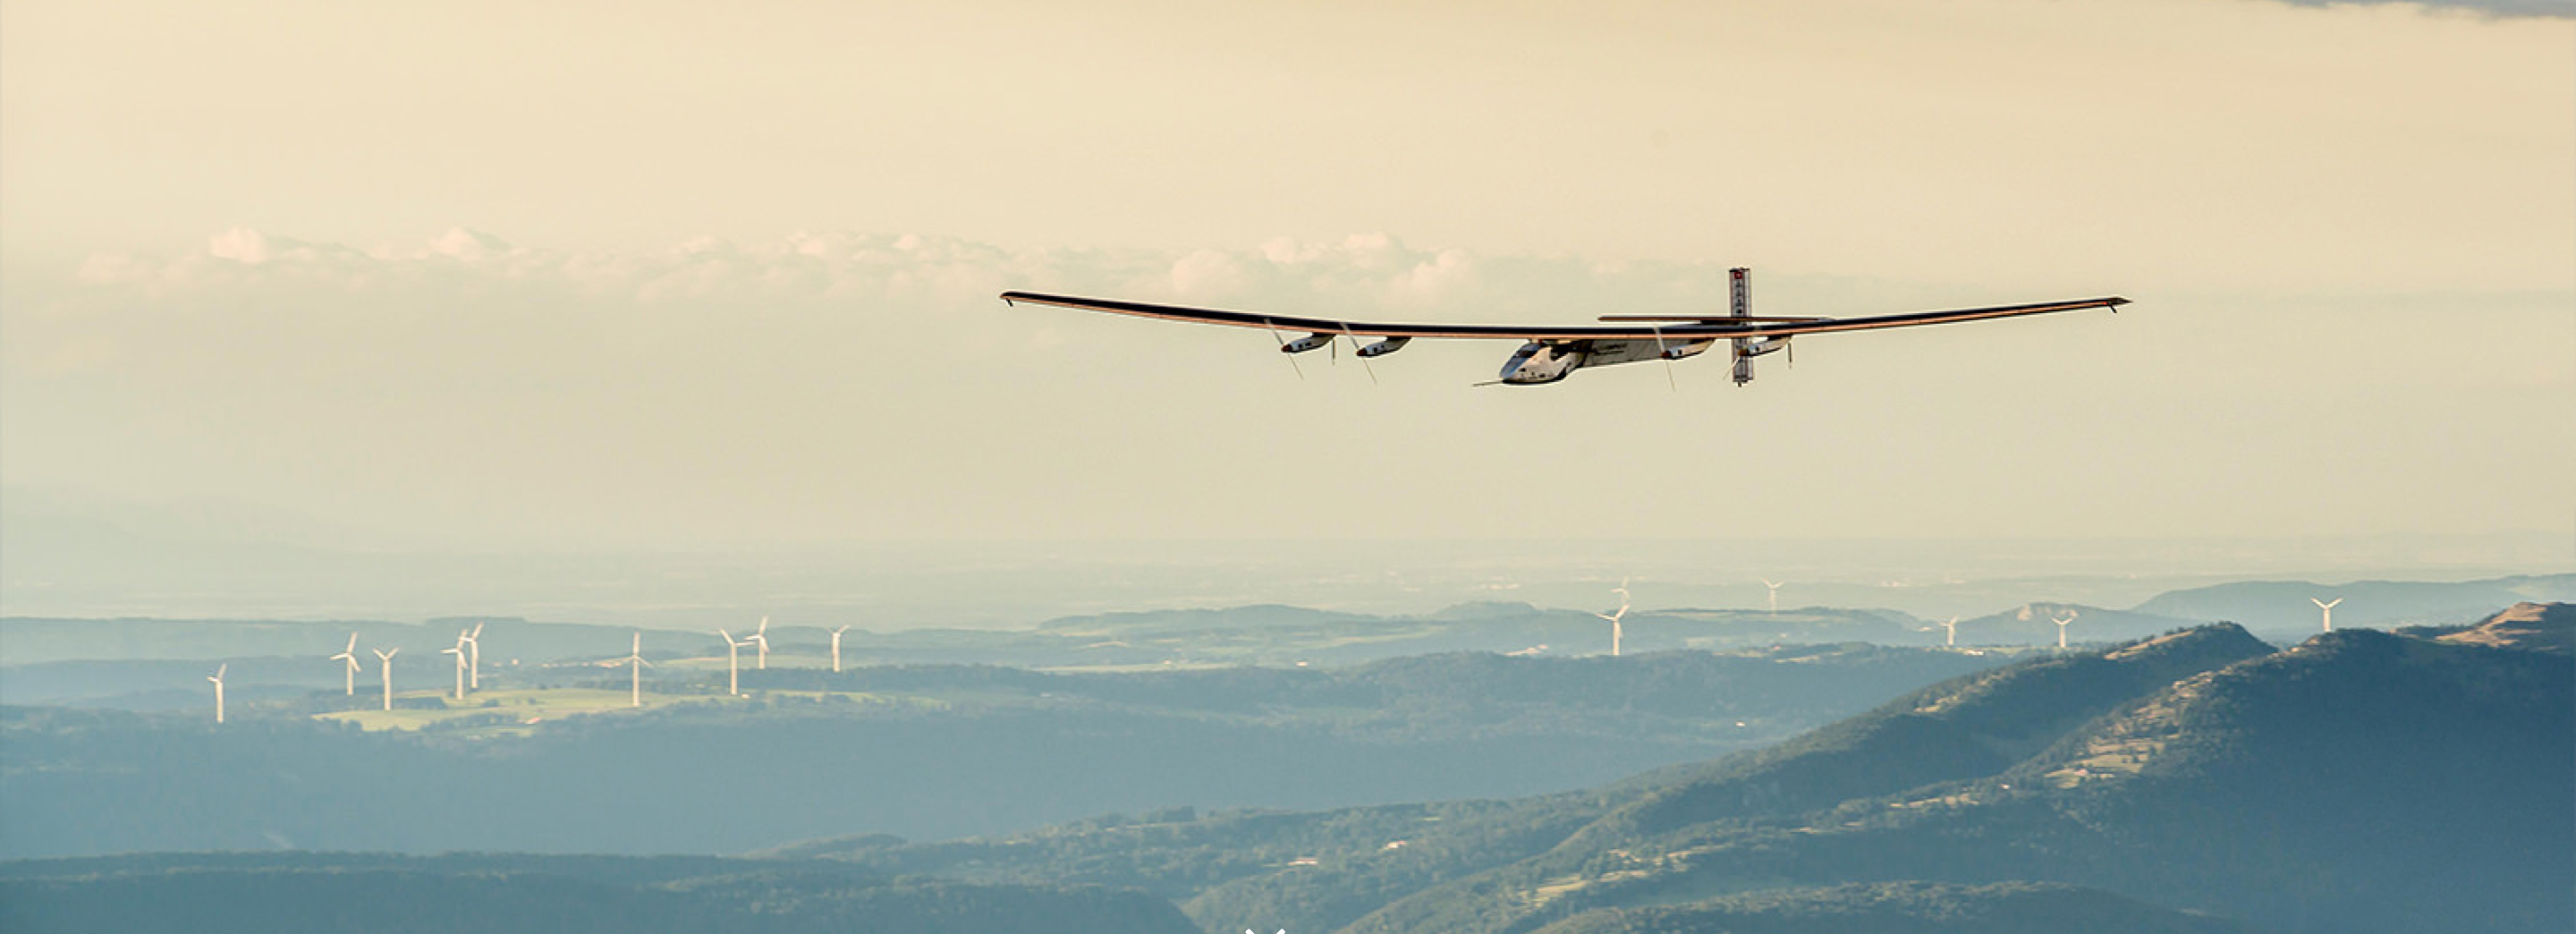 Solar Impulse successfully made it to Arizona, marking another step forward in its trip around the world.